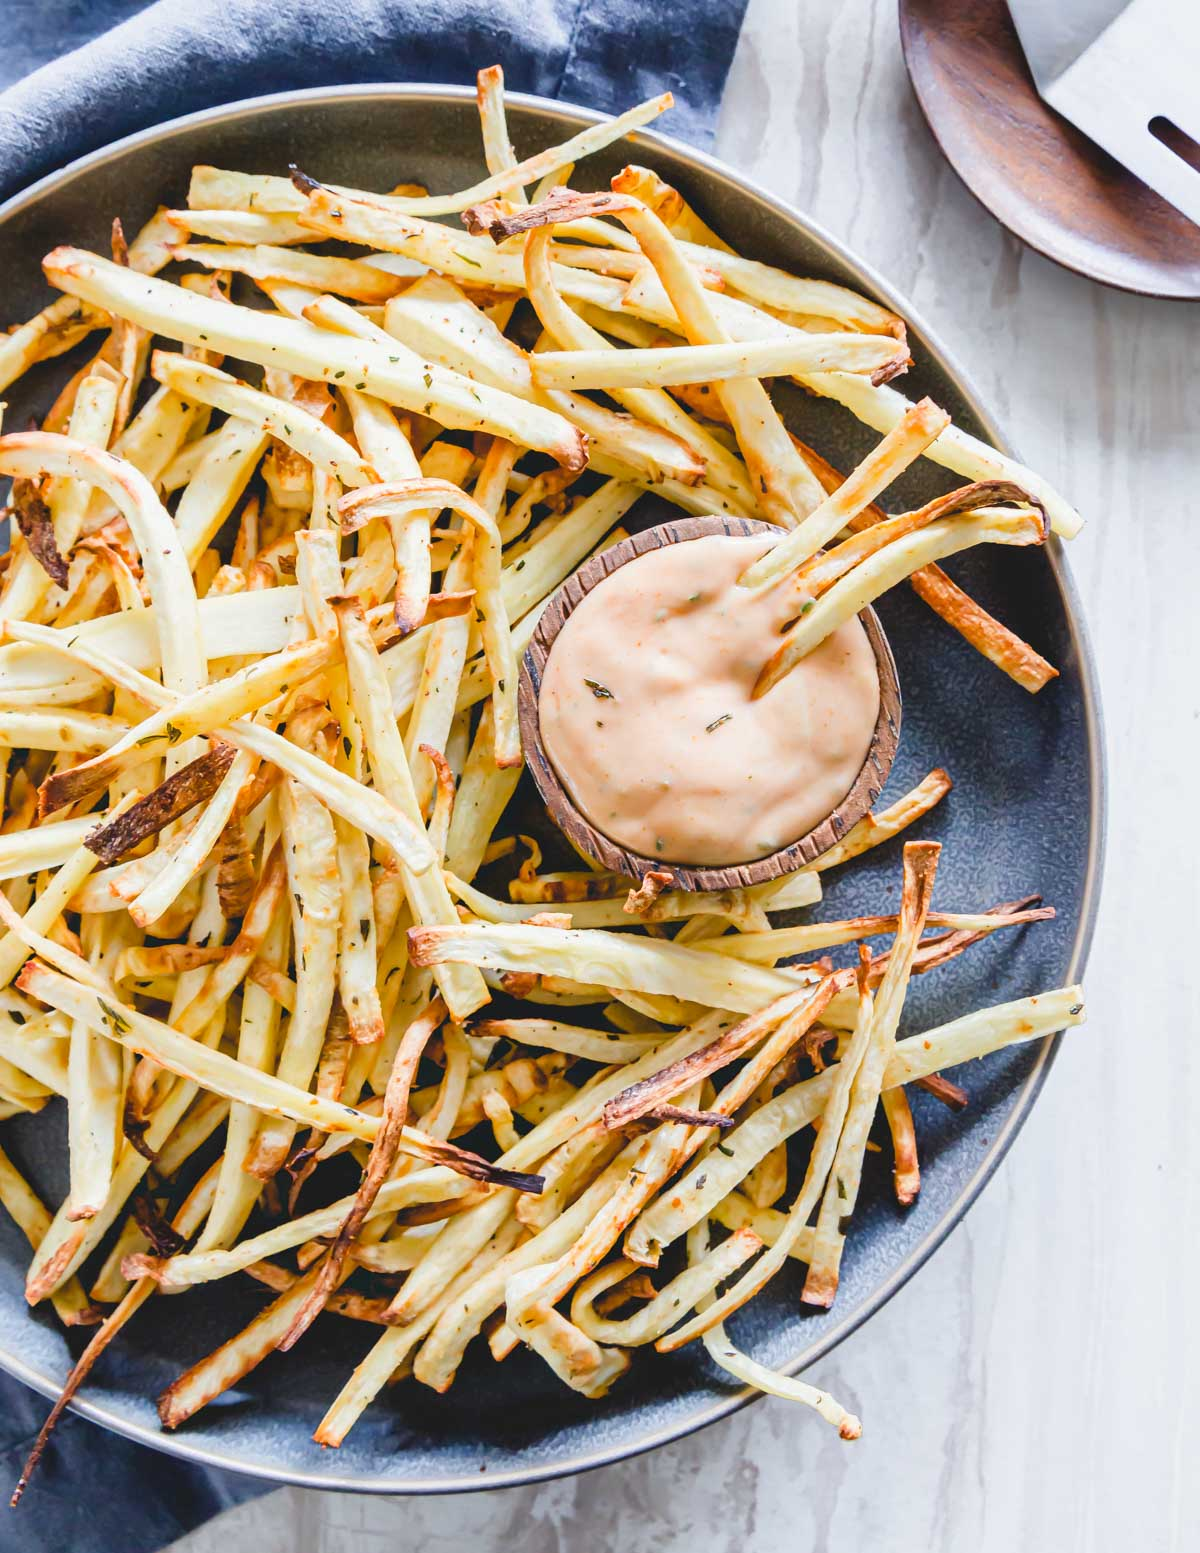 Crispy parsnip fries with rosemary and garlic seasoning served on a plate with an easy fry-sauce.